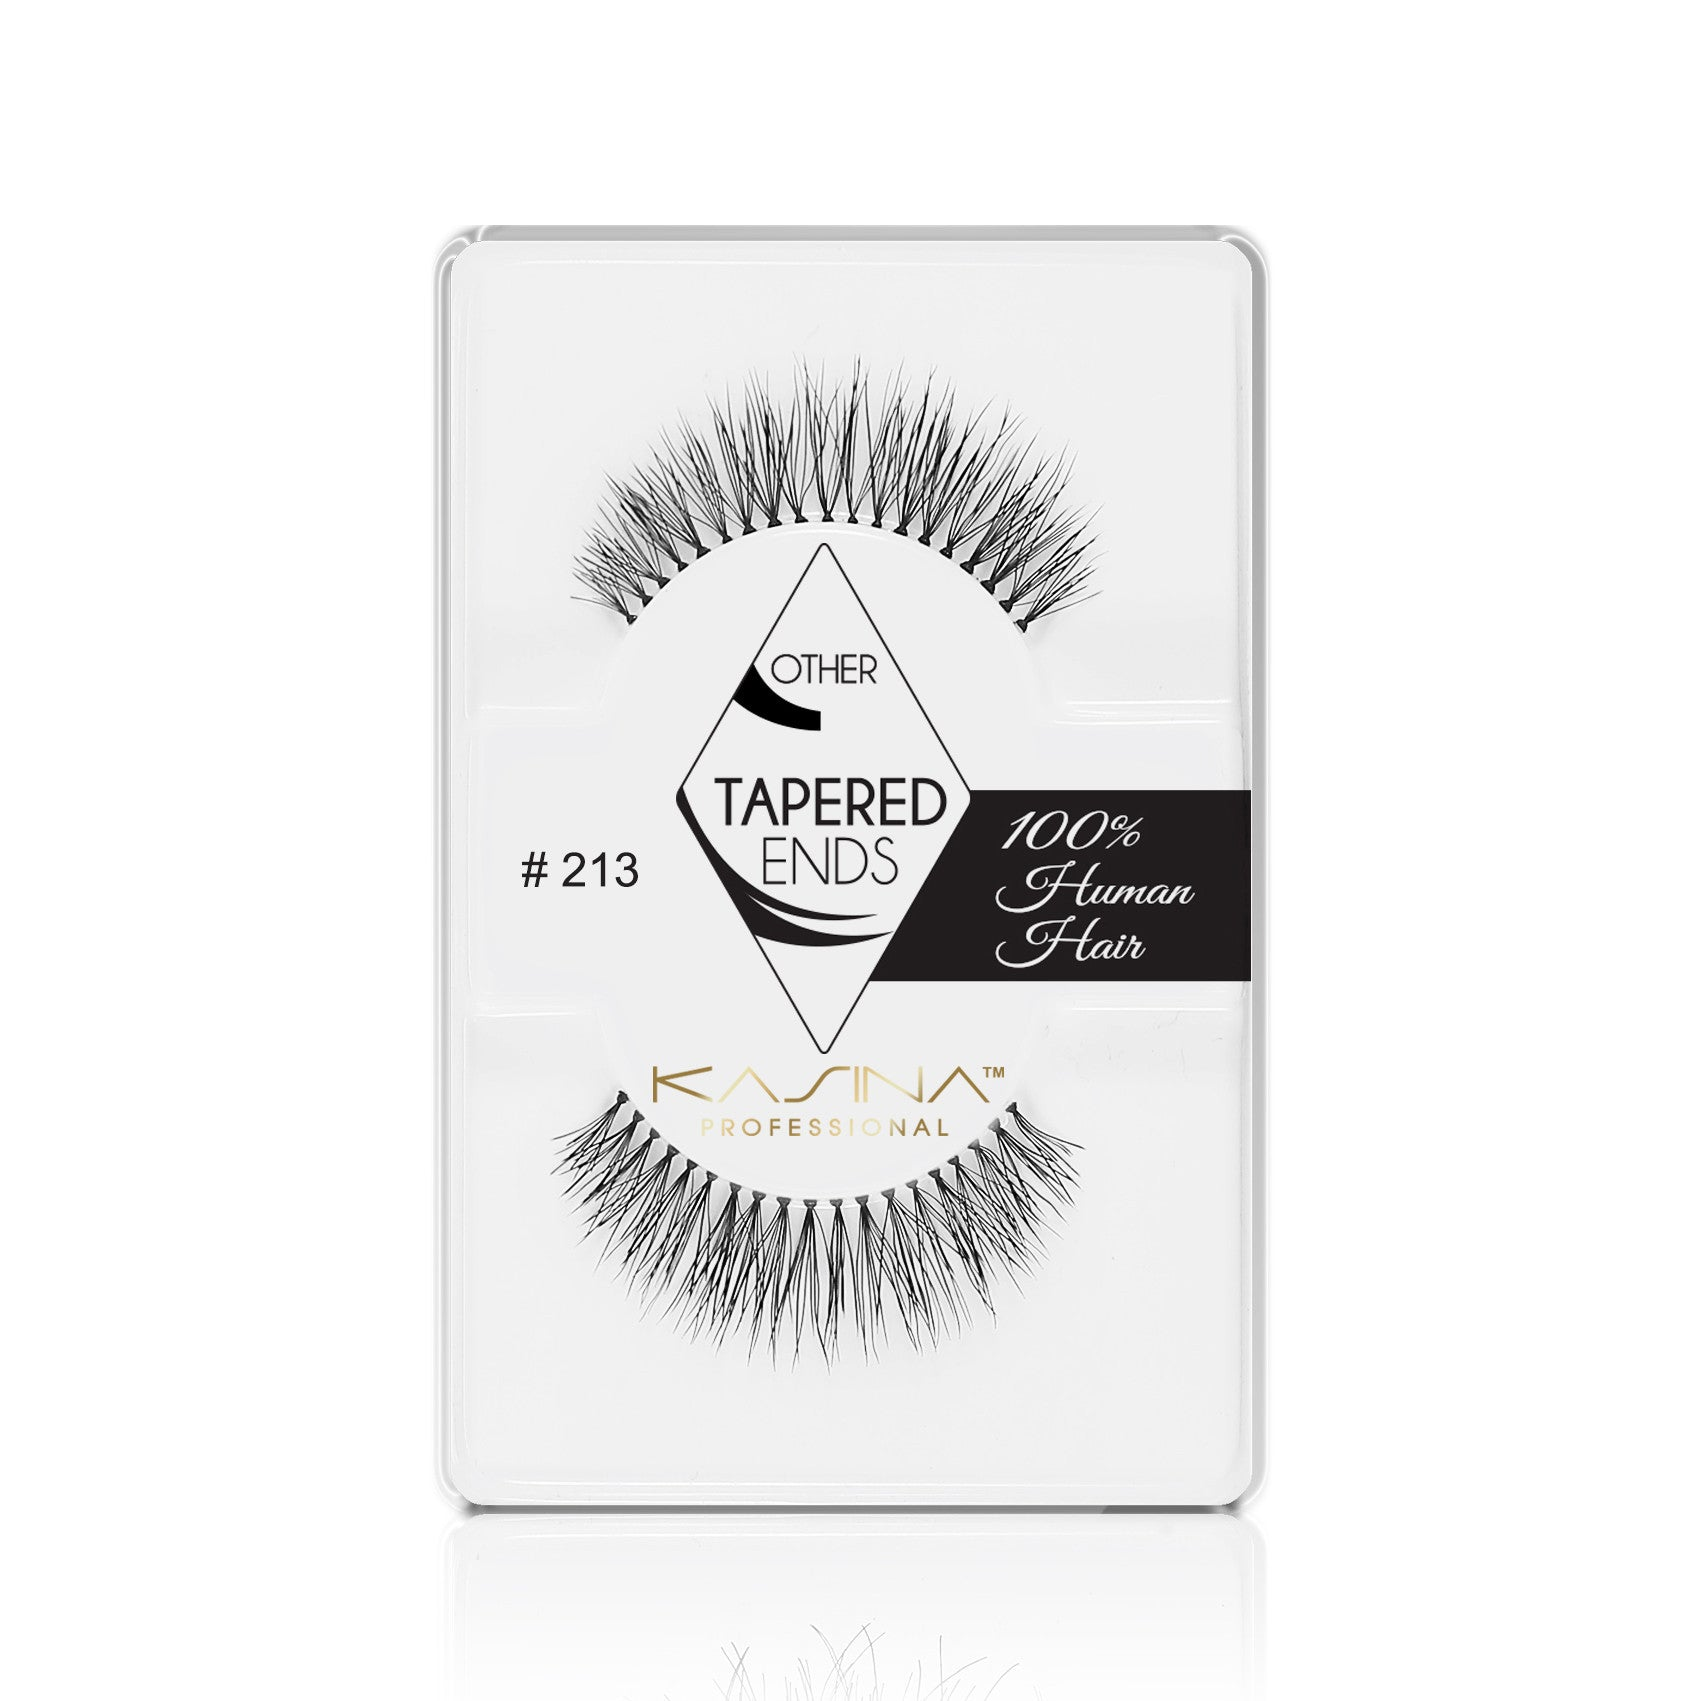 False Lashes - Professional Tapered ends lashes 213T. HARLEY - Recommended by Professional Makeup Artists.